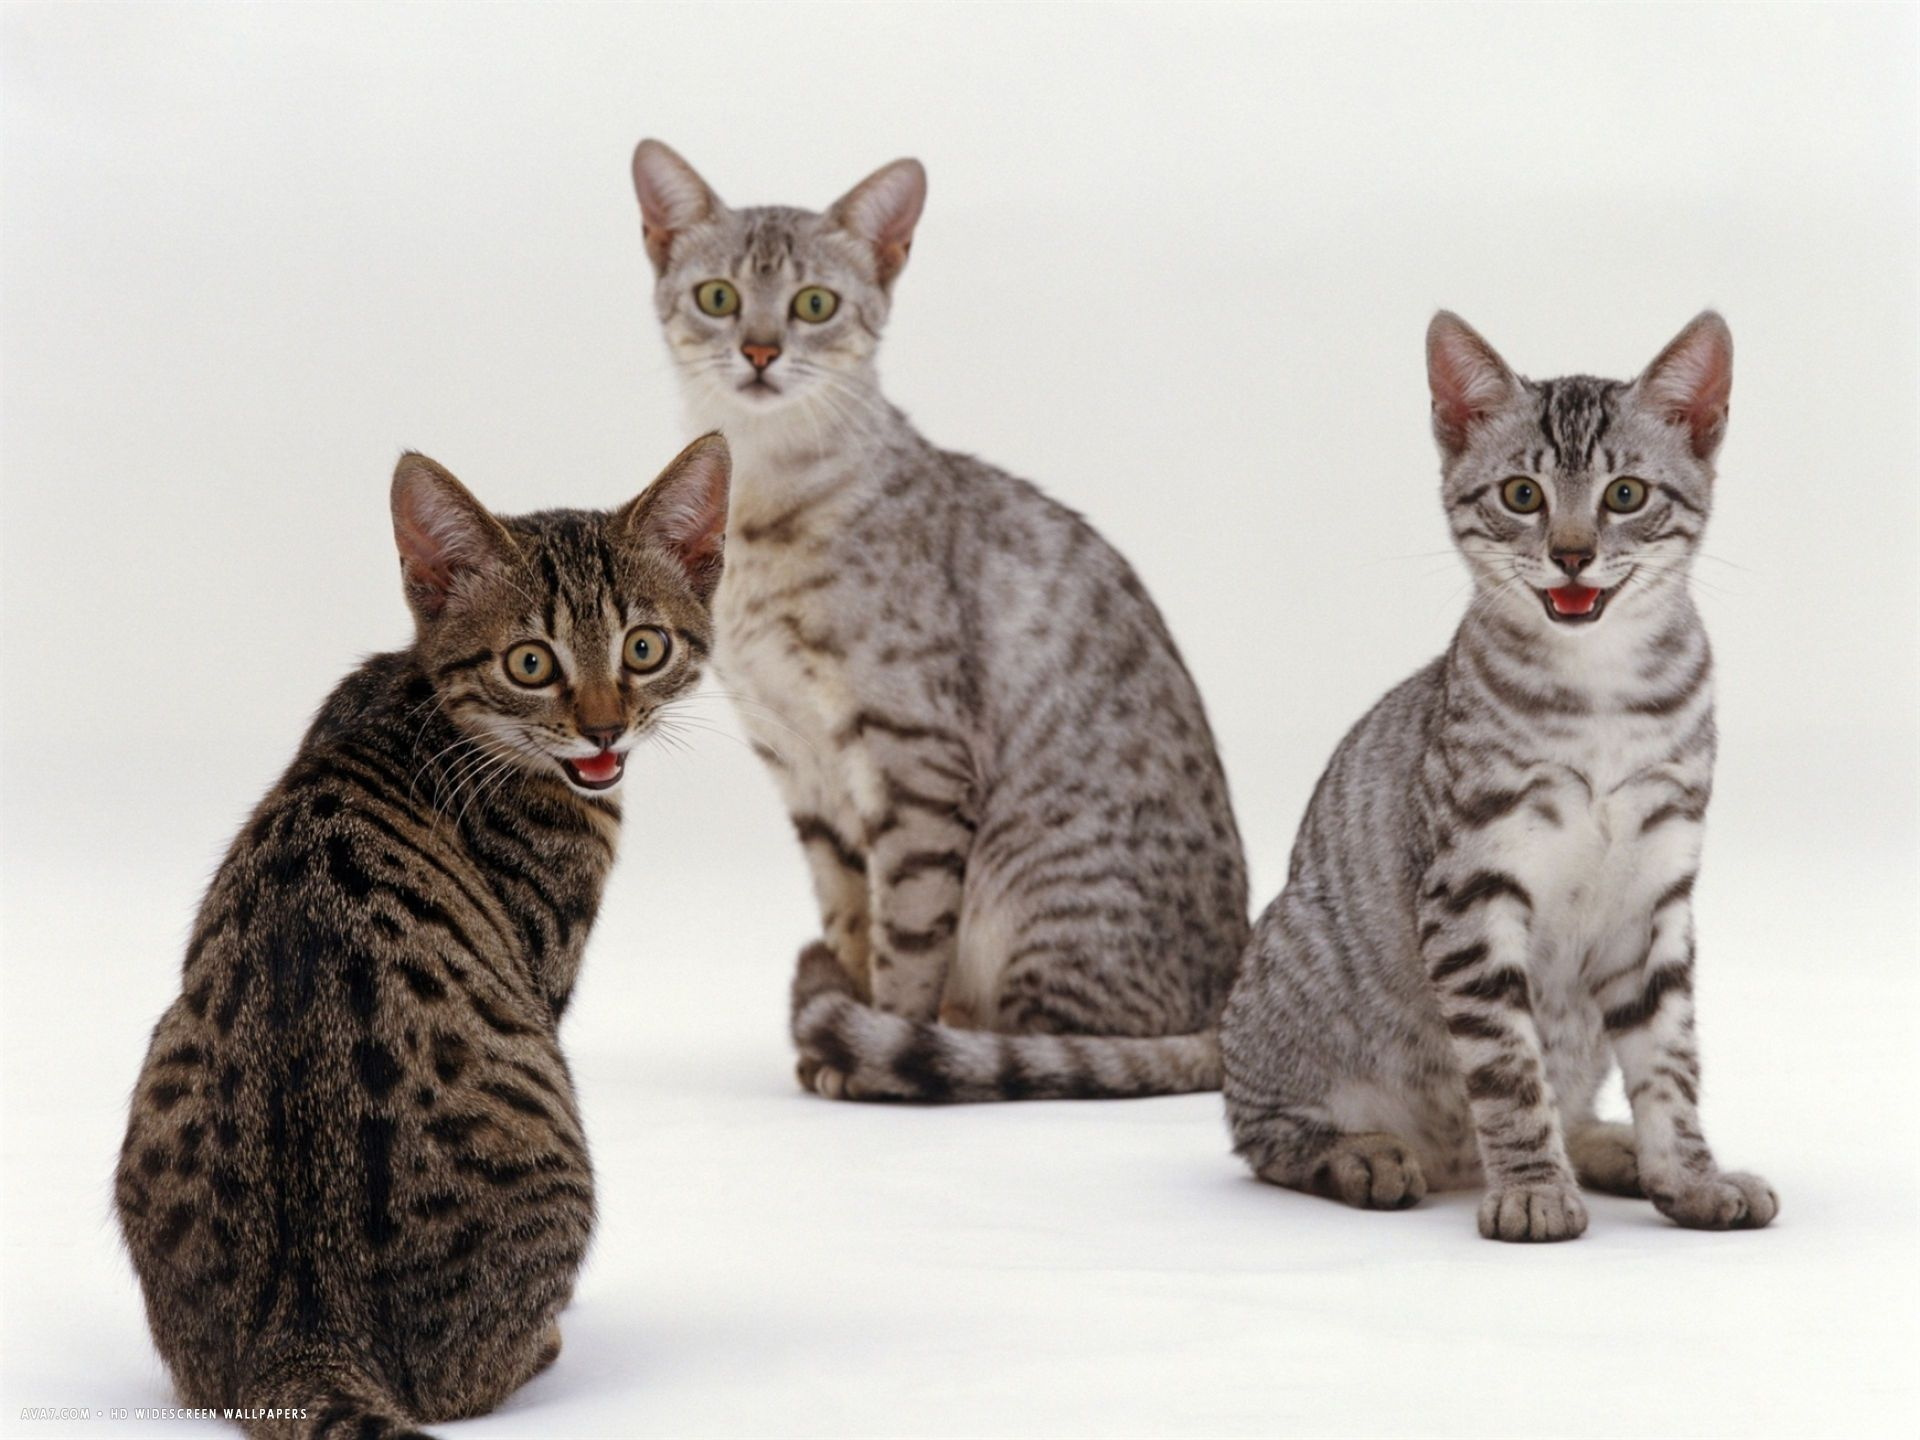 Female Silver Egyptian Mau With Two Of Her 14 Week Kittens Egyptian Maus Cat Are A Small To Medium Sized Short Haired C Egyptian Mau Egyptian Cats Kittens